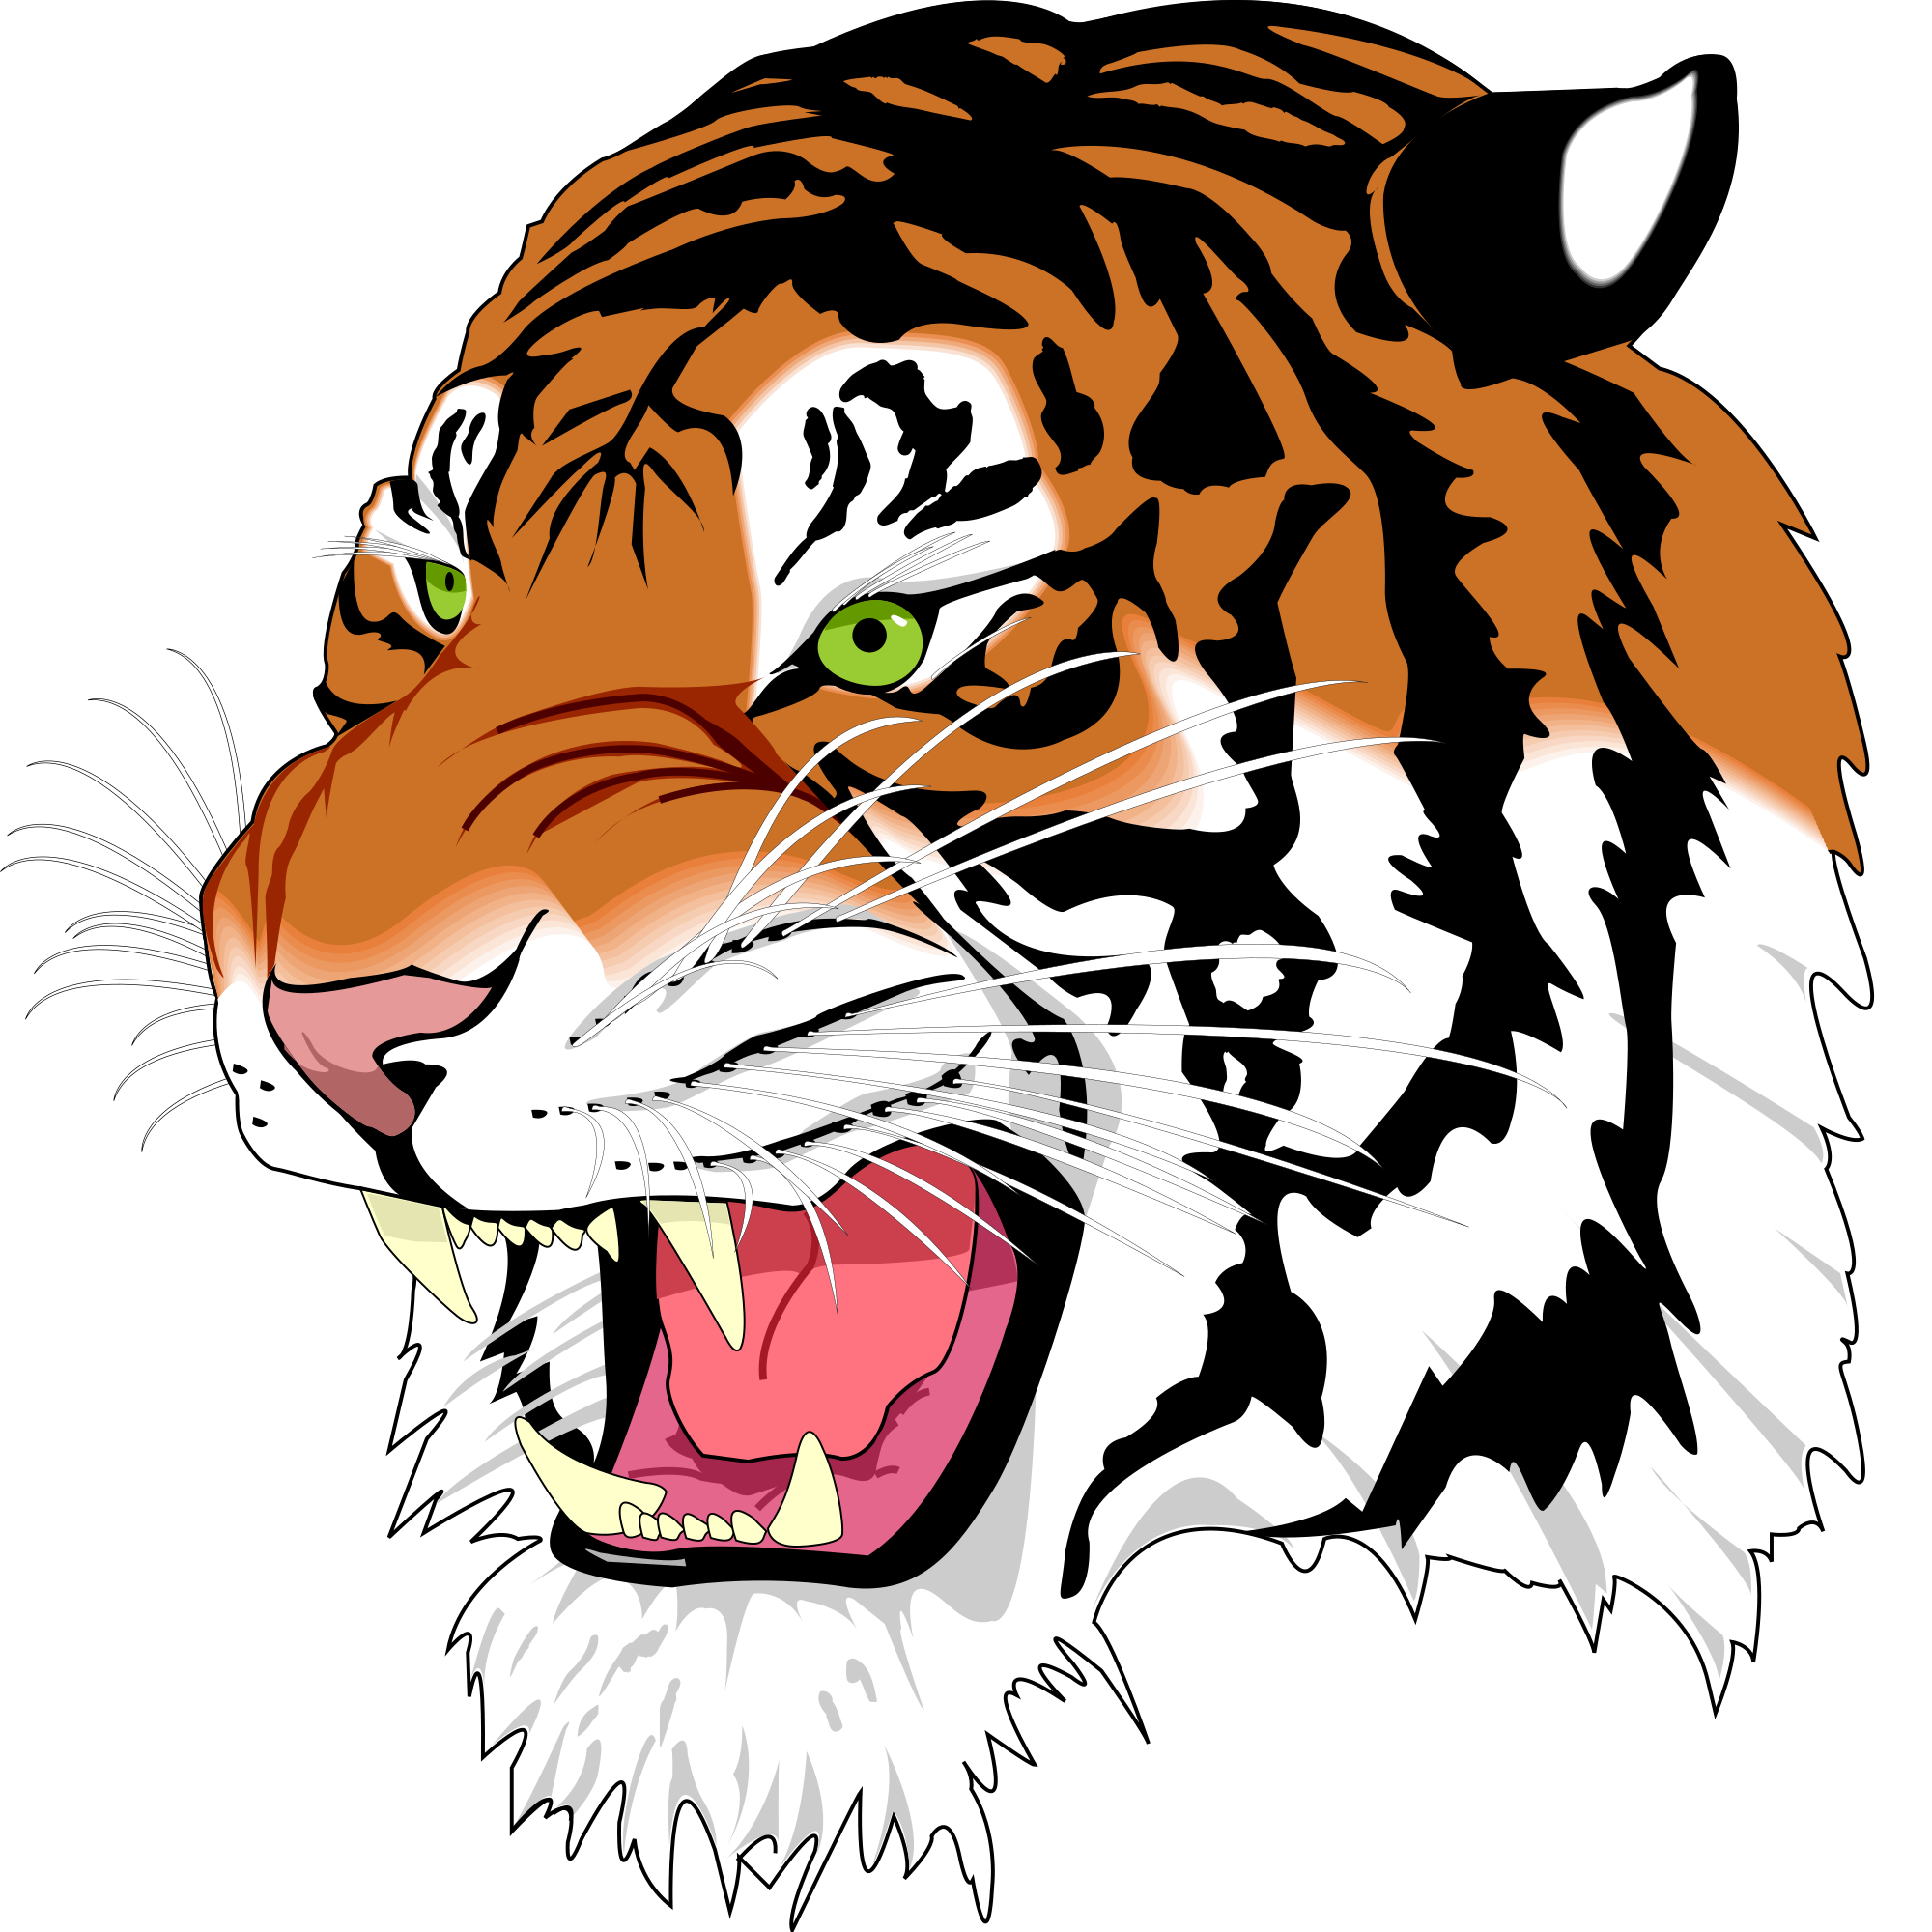 Ghostscript tiger wikimedia commons. Svg test file clipart black and white download